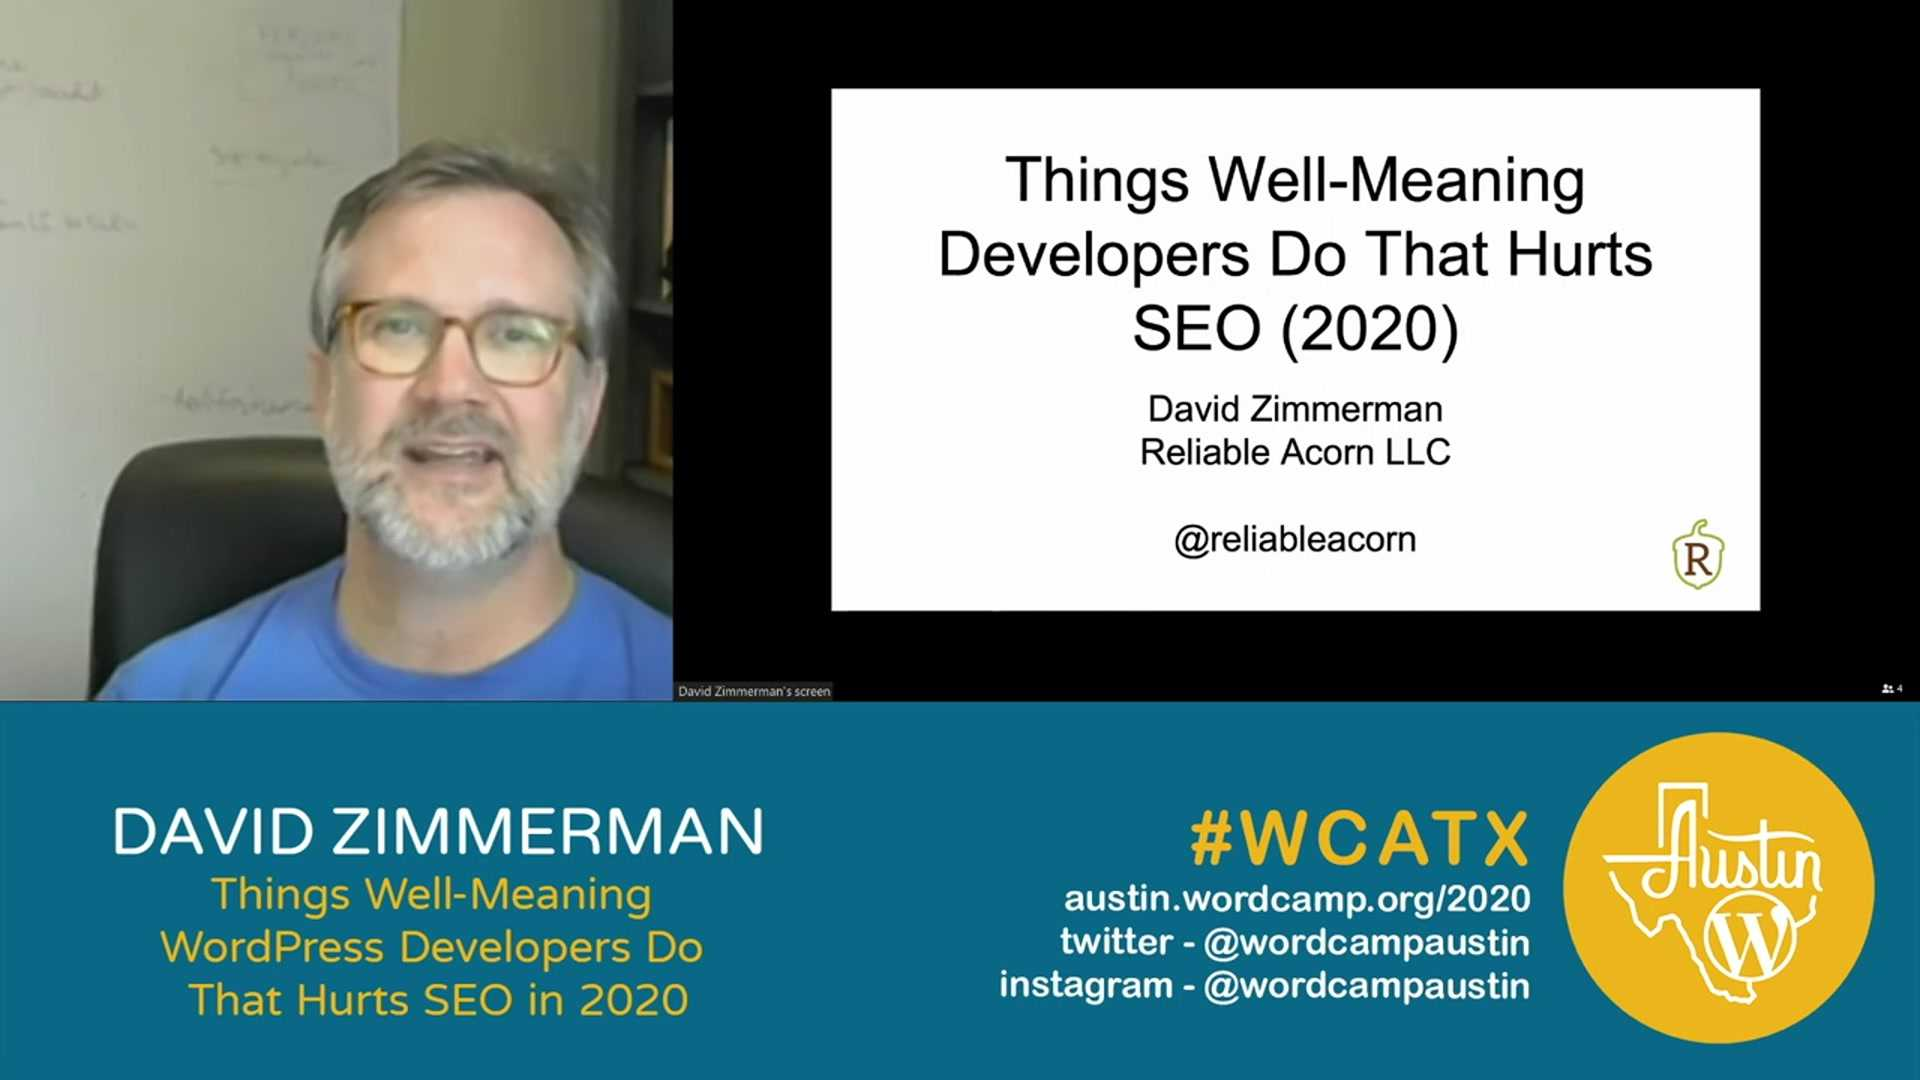 David Zimmerman: Things Well-Meaning WordPress Developers Do That Hurt SEO in 2020